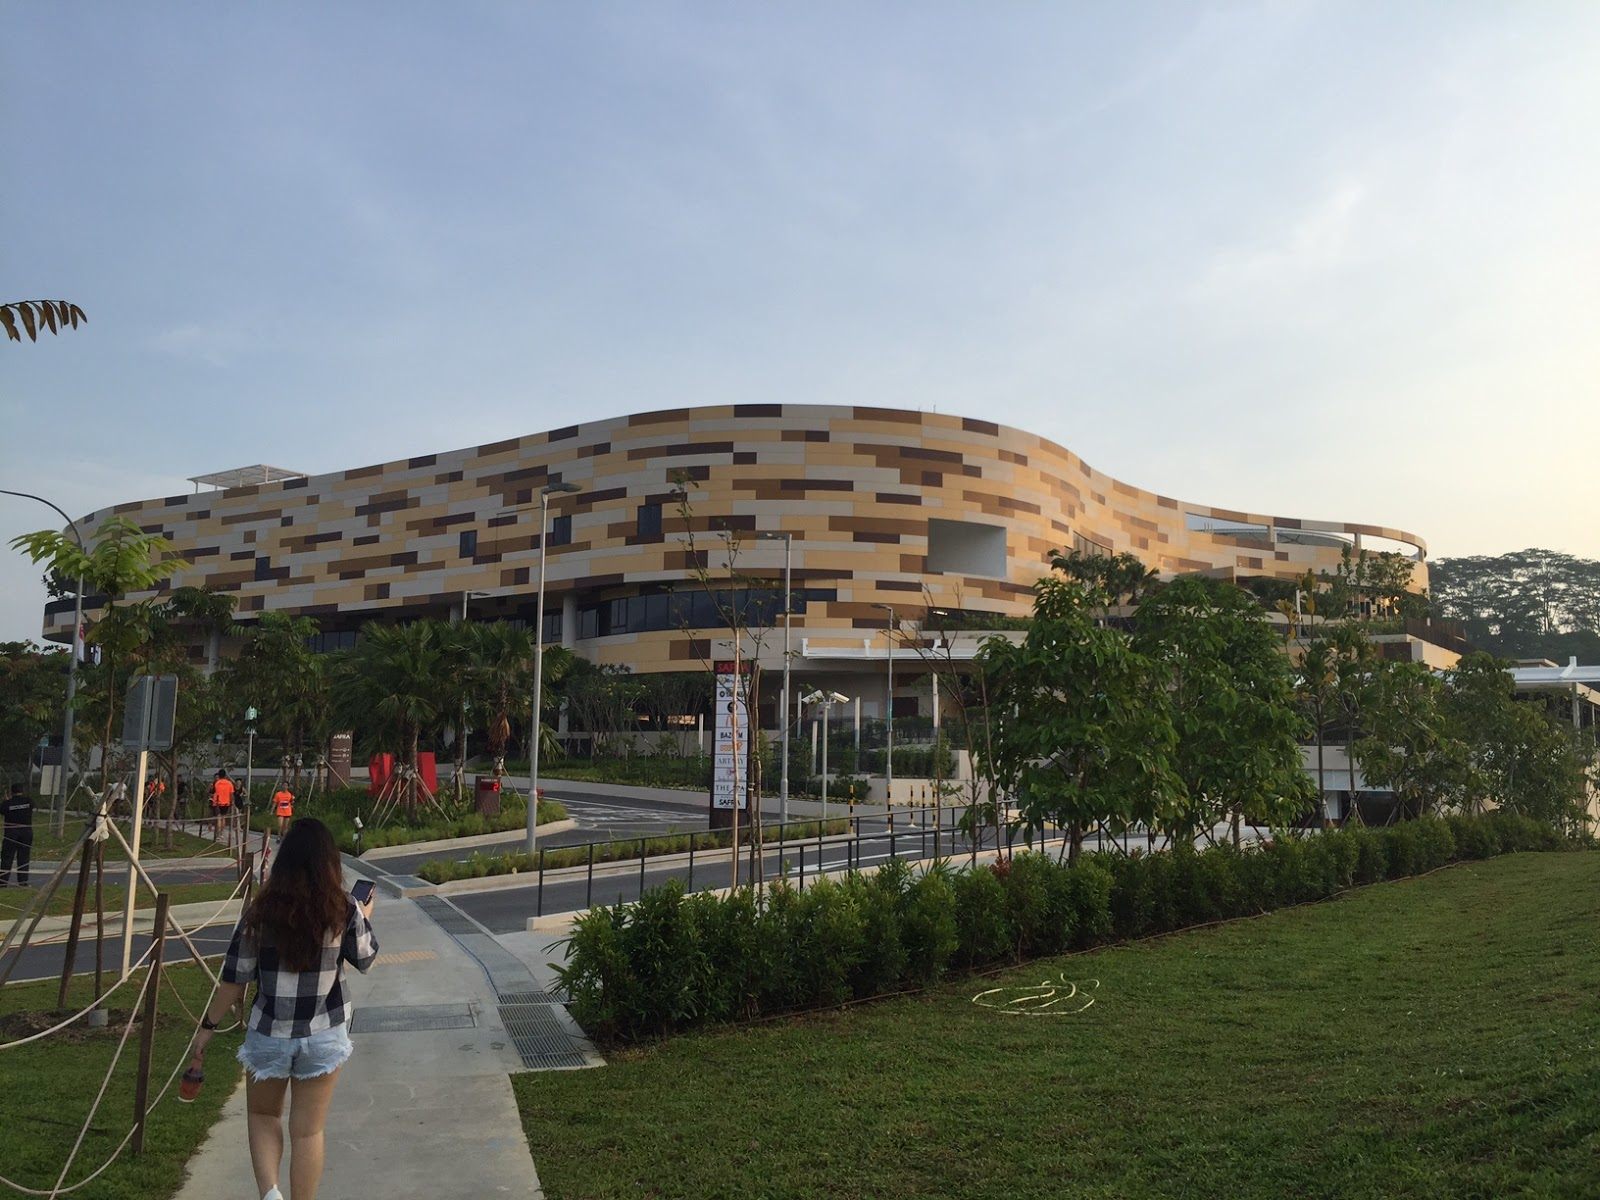 Brand New Safra Punggol. Security Guy On The Left Turning All The Cars Away